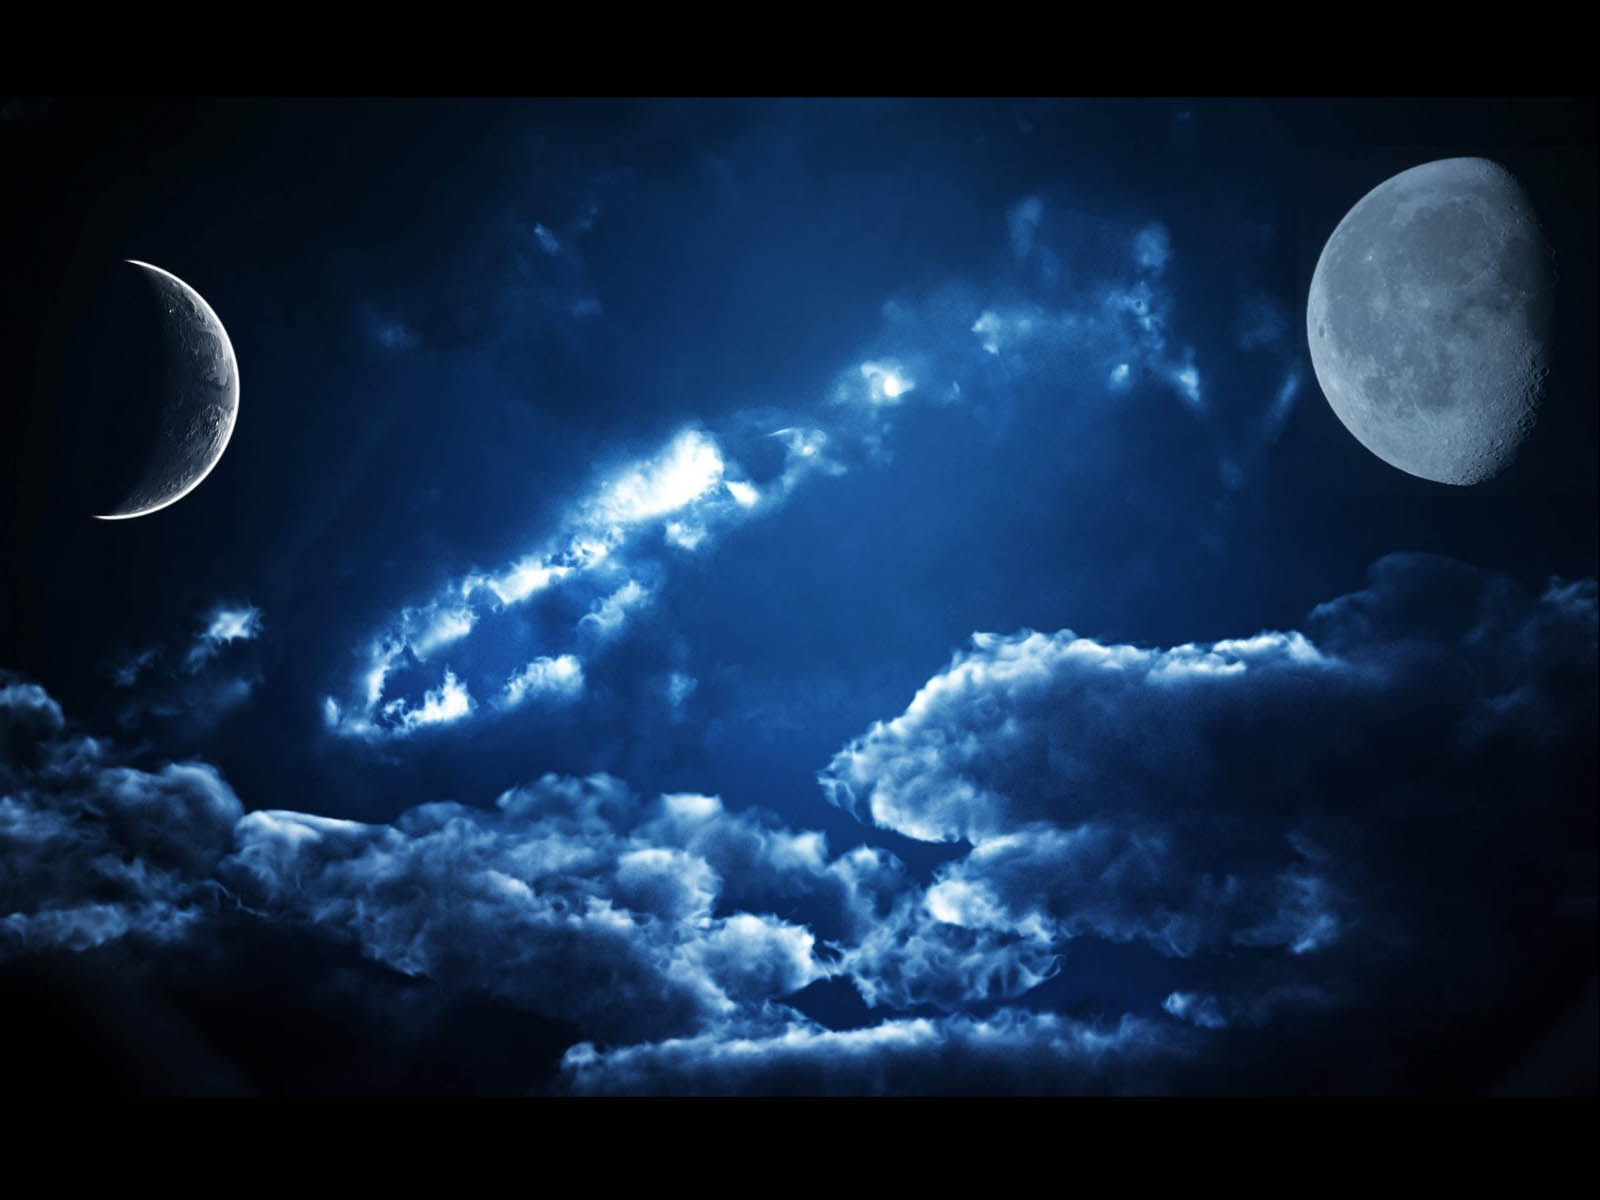 wallpapers: Moon Fantasy Wallpapers